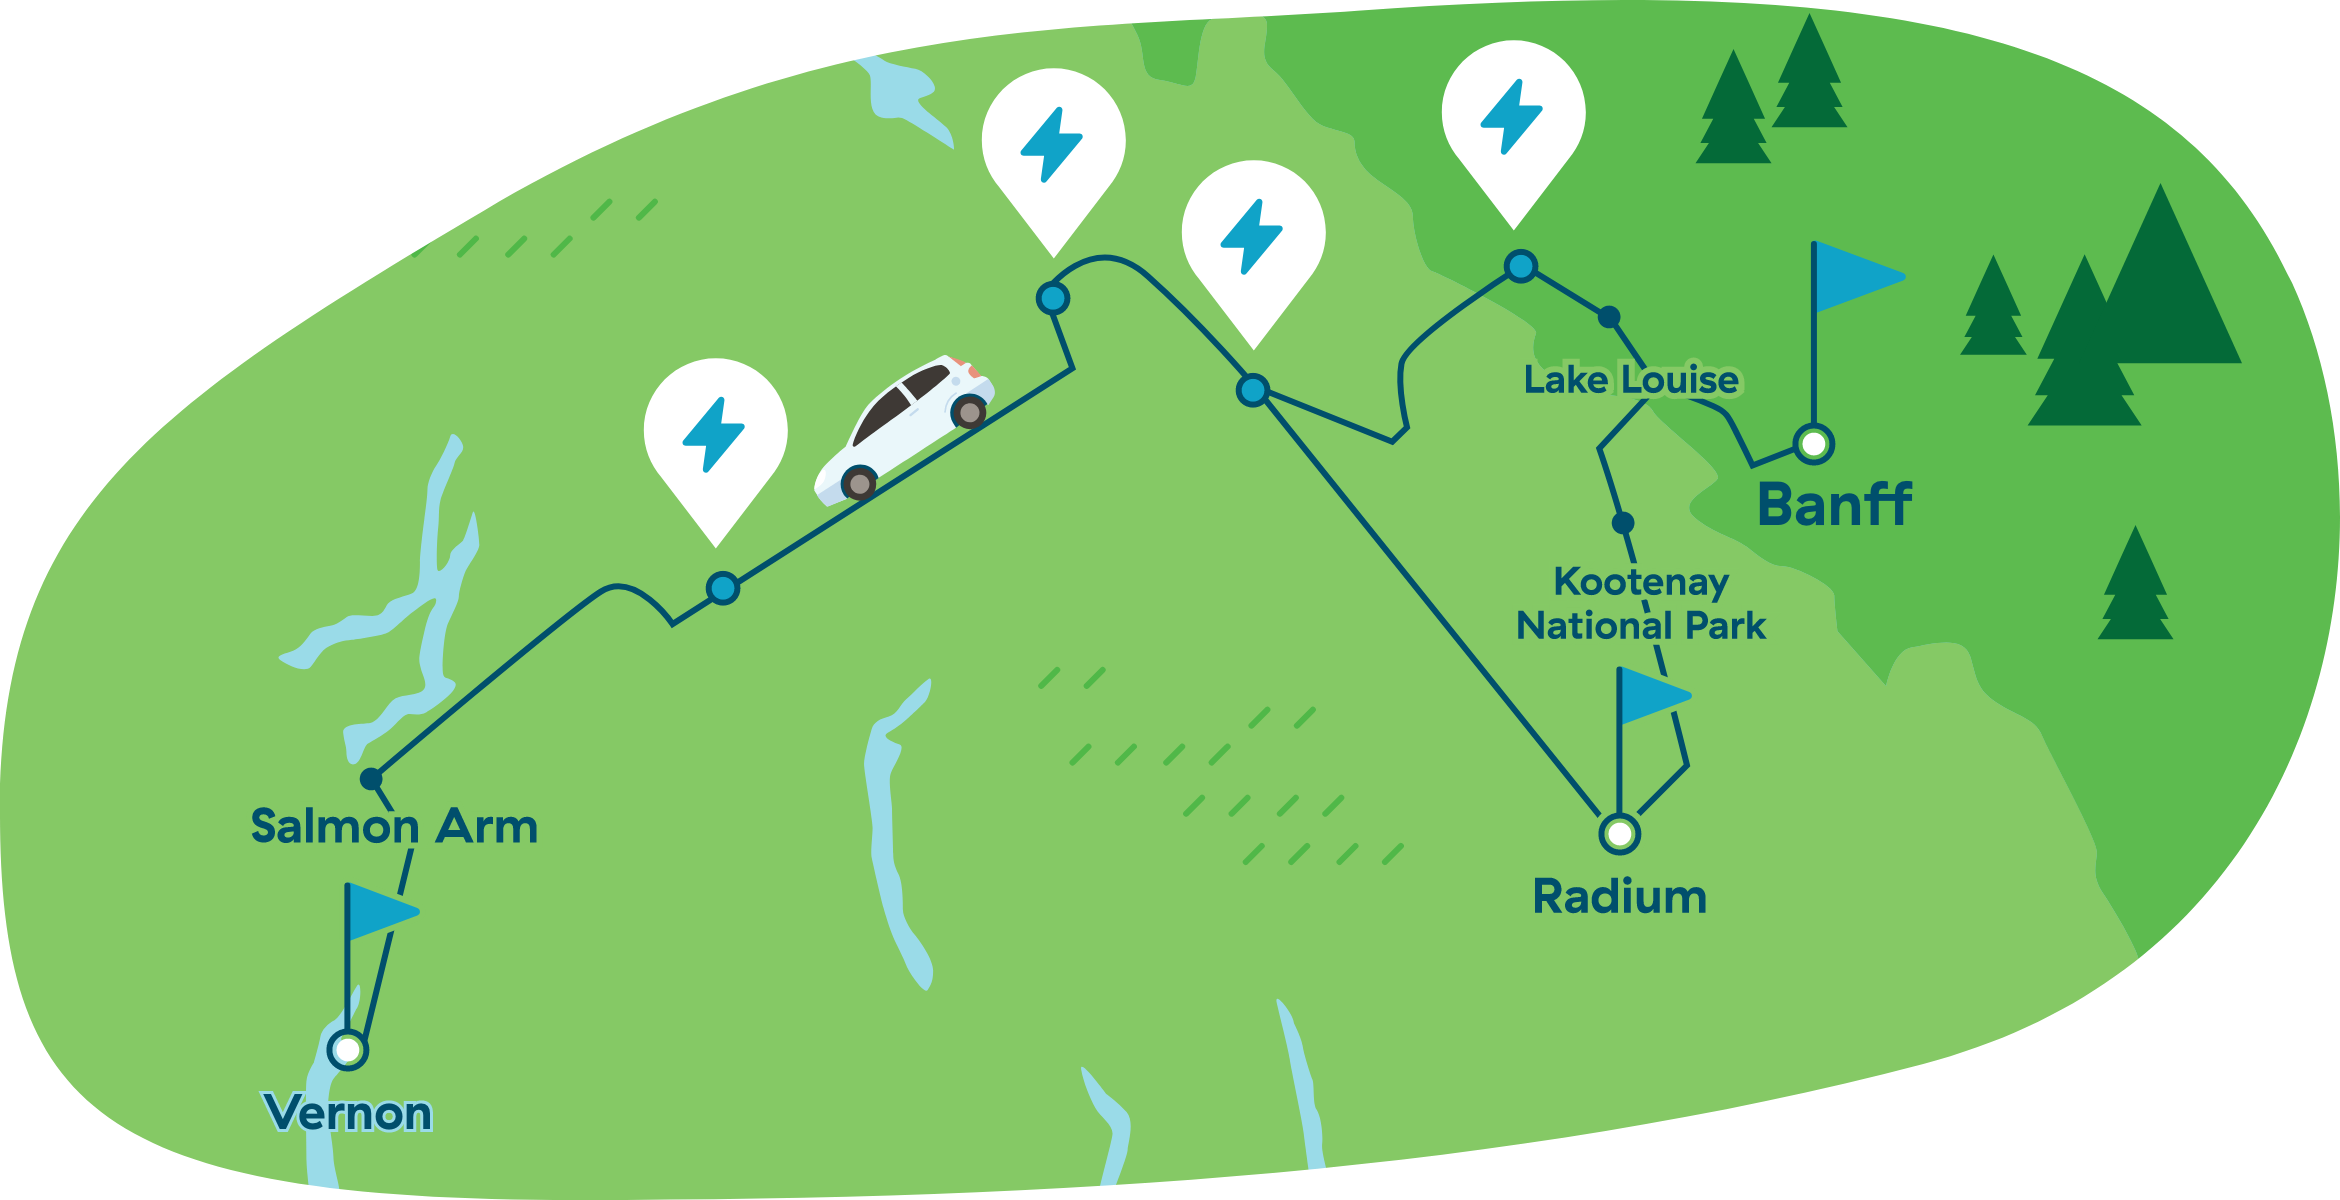 Map of driving from Vernon to Banff and Radium